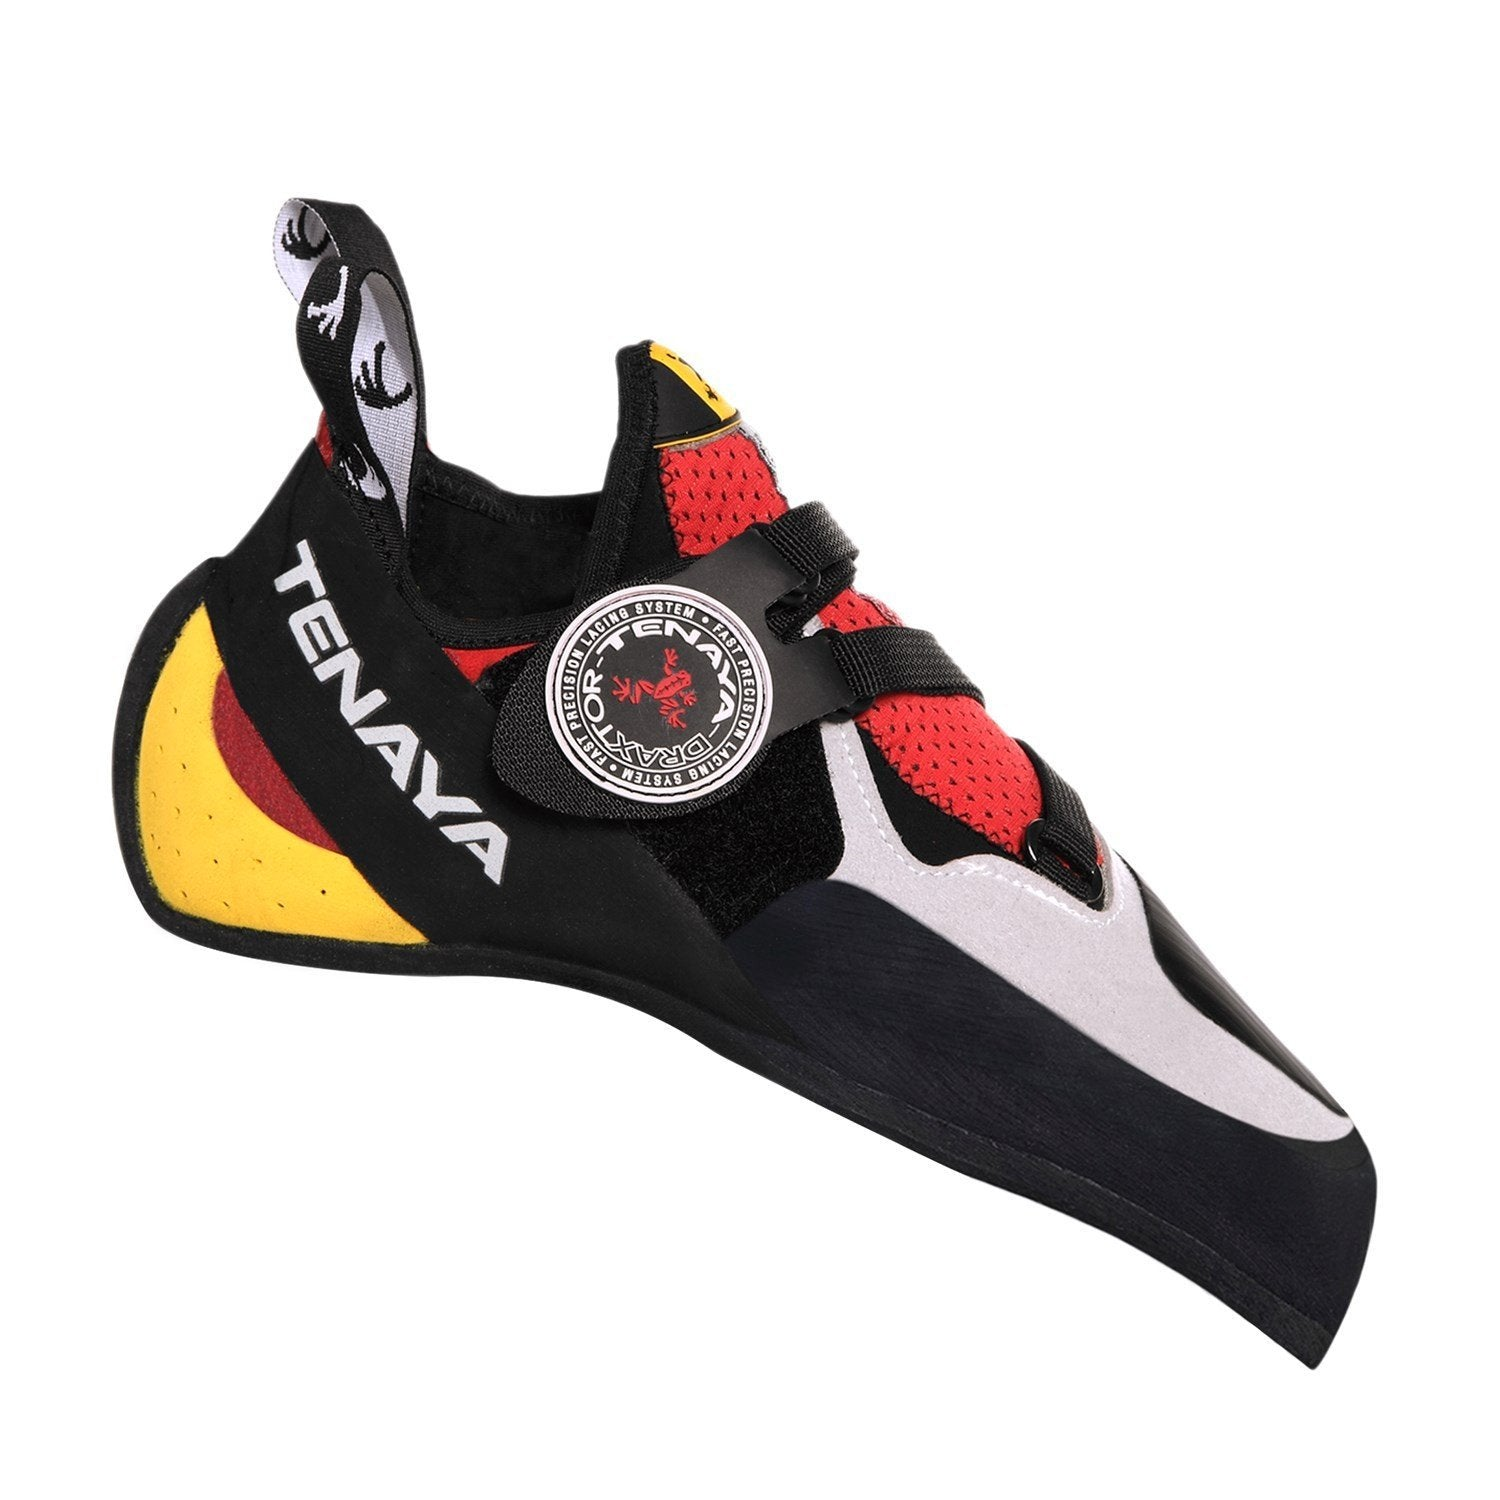 Outer side view of the Tenaya Iati climbing shoe